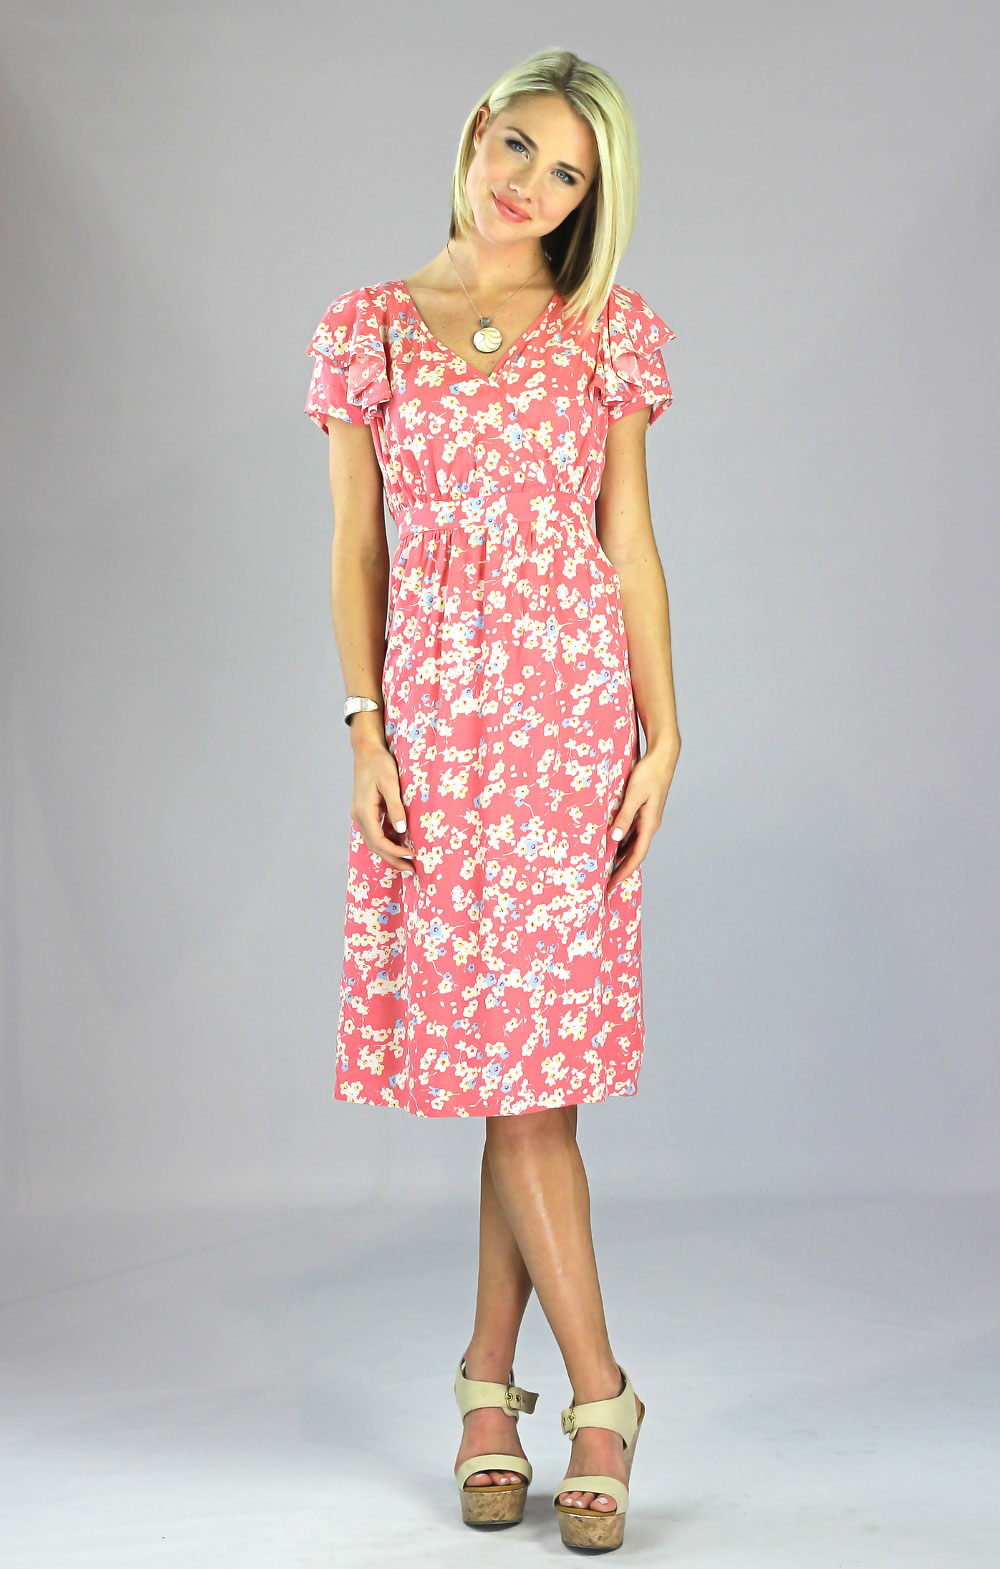 Felicity Modest Flutter-Sleeve Dress in Salmon Pink Floral Print